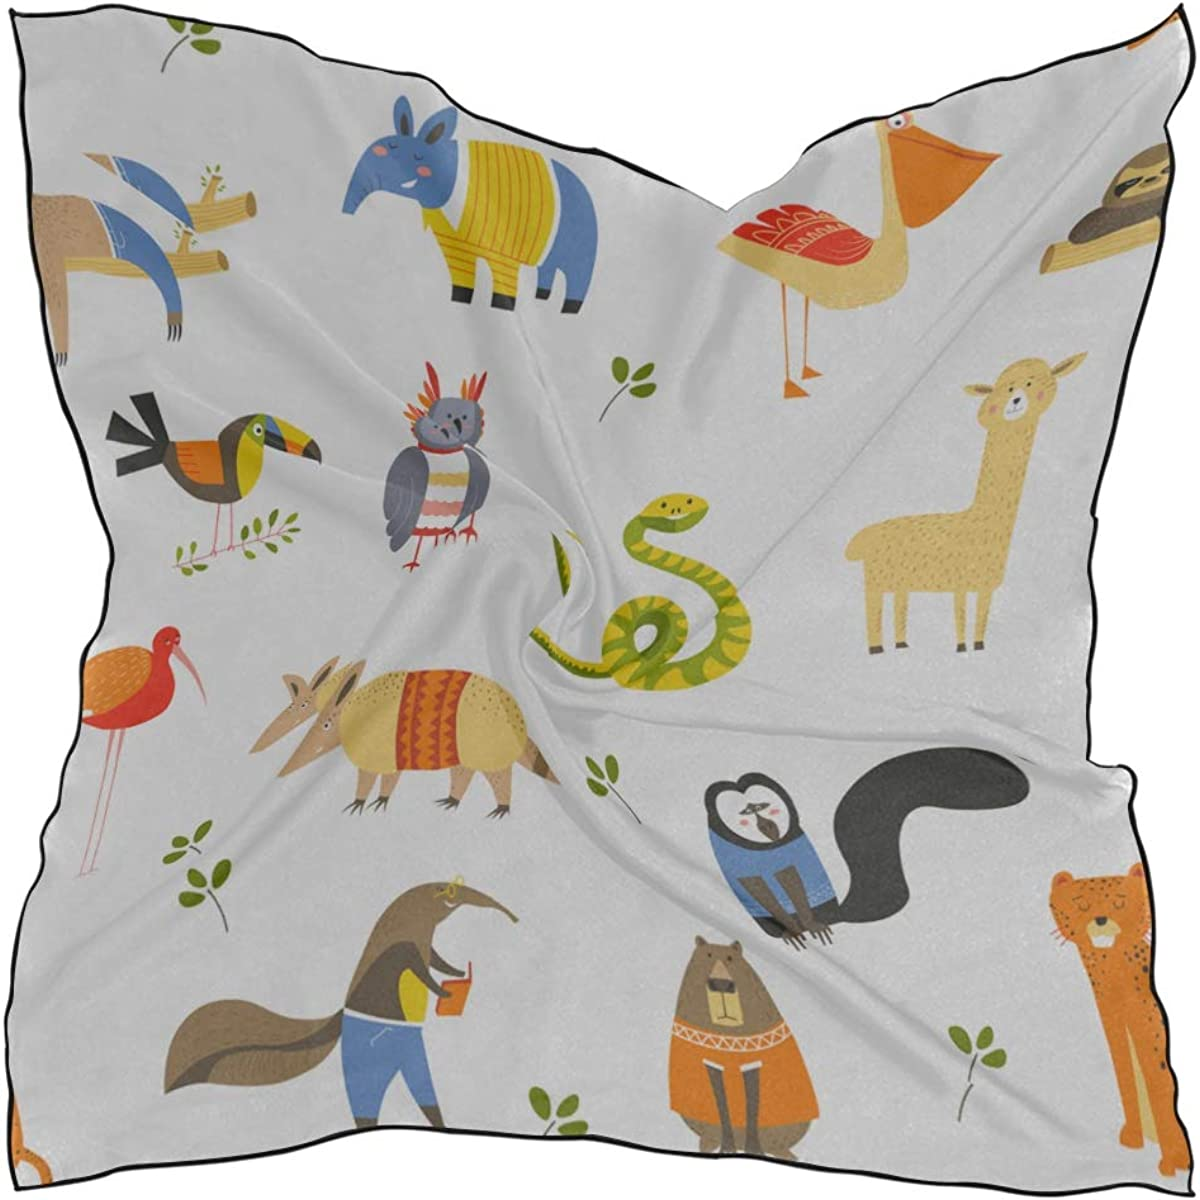 Soft Polyester Silk Square Scarf Headband Fashion Print Children Drawing Cute Animals Scarf Hair Scarf For Kids Girls Square Fashion Scarf Multiple Ways Of Wearing Daily Decor